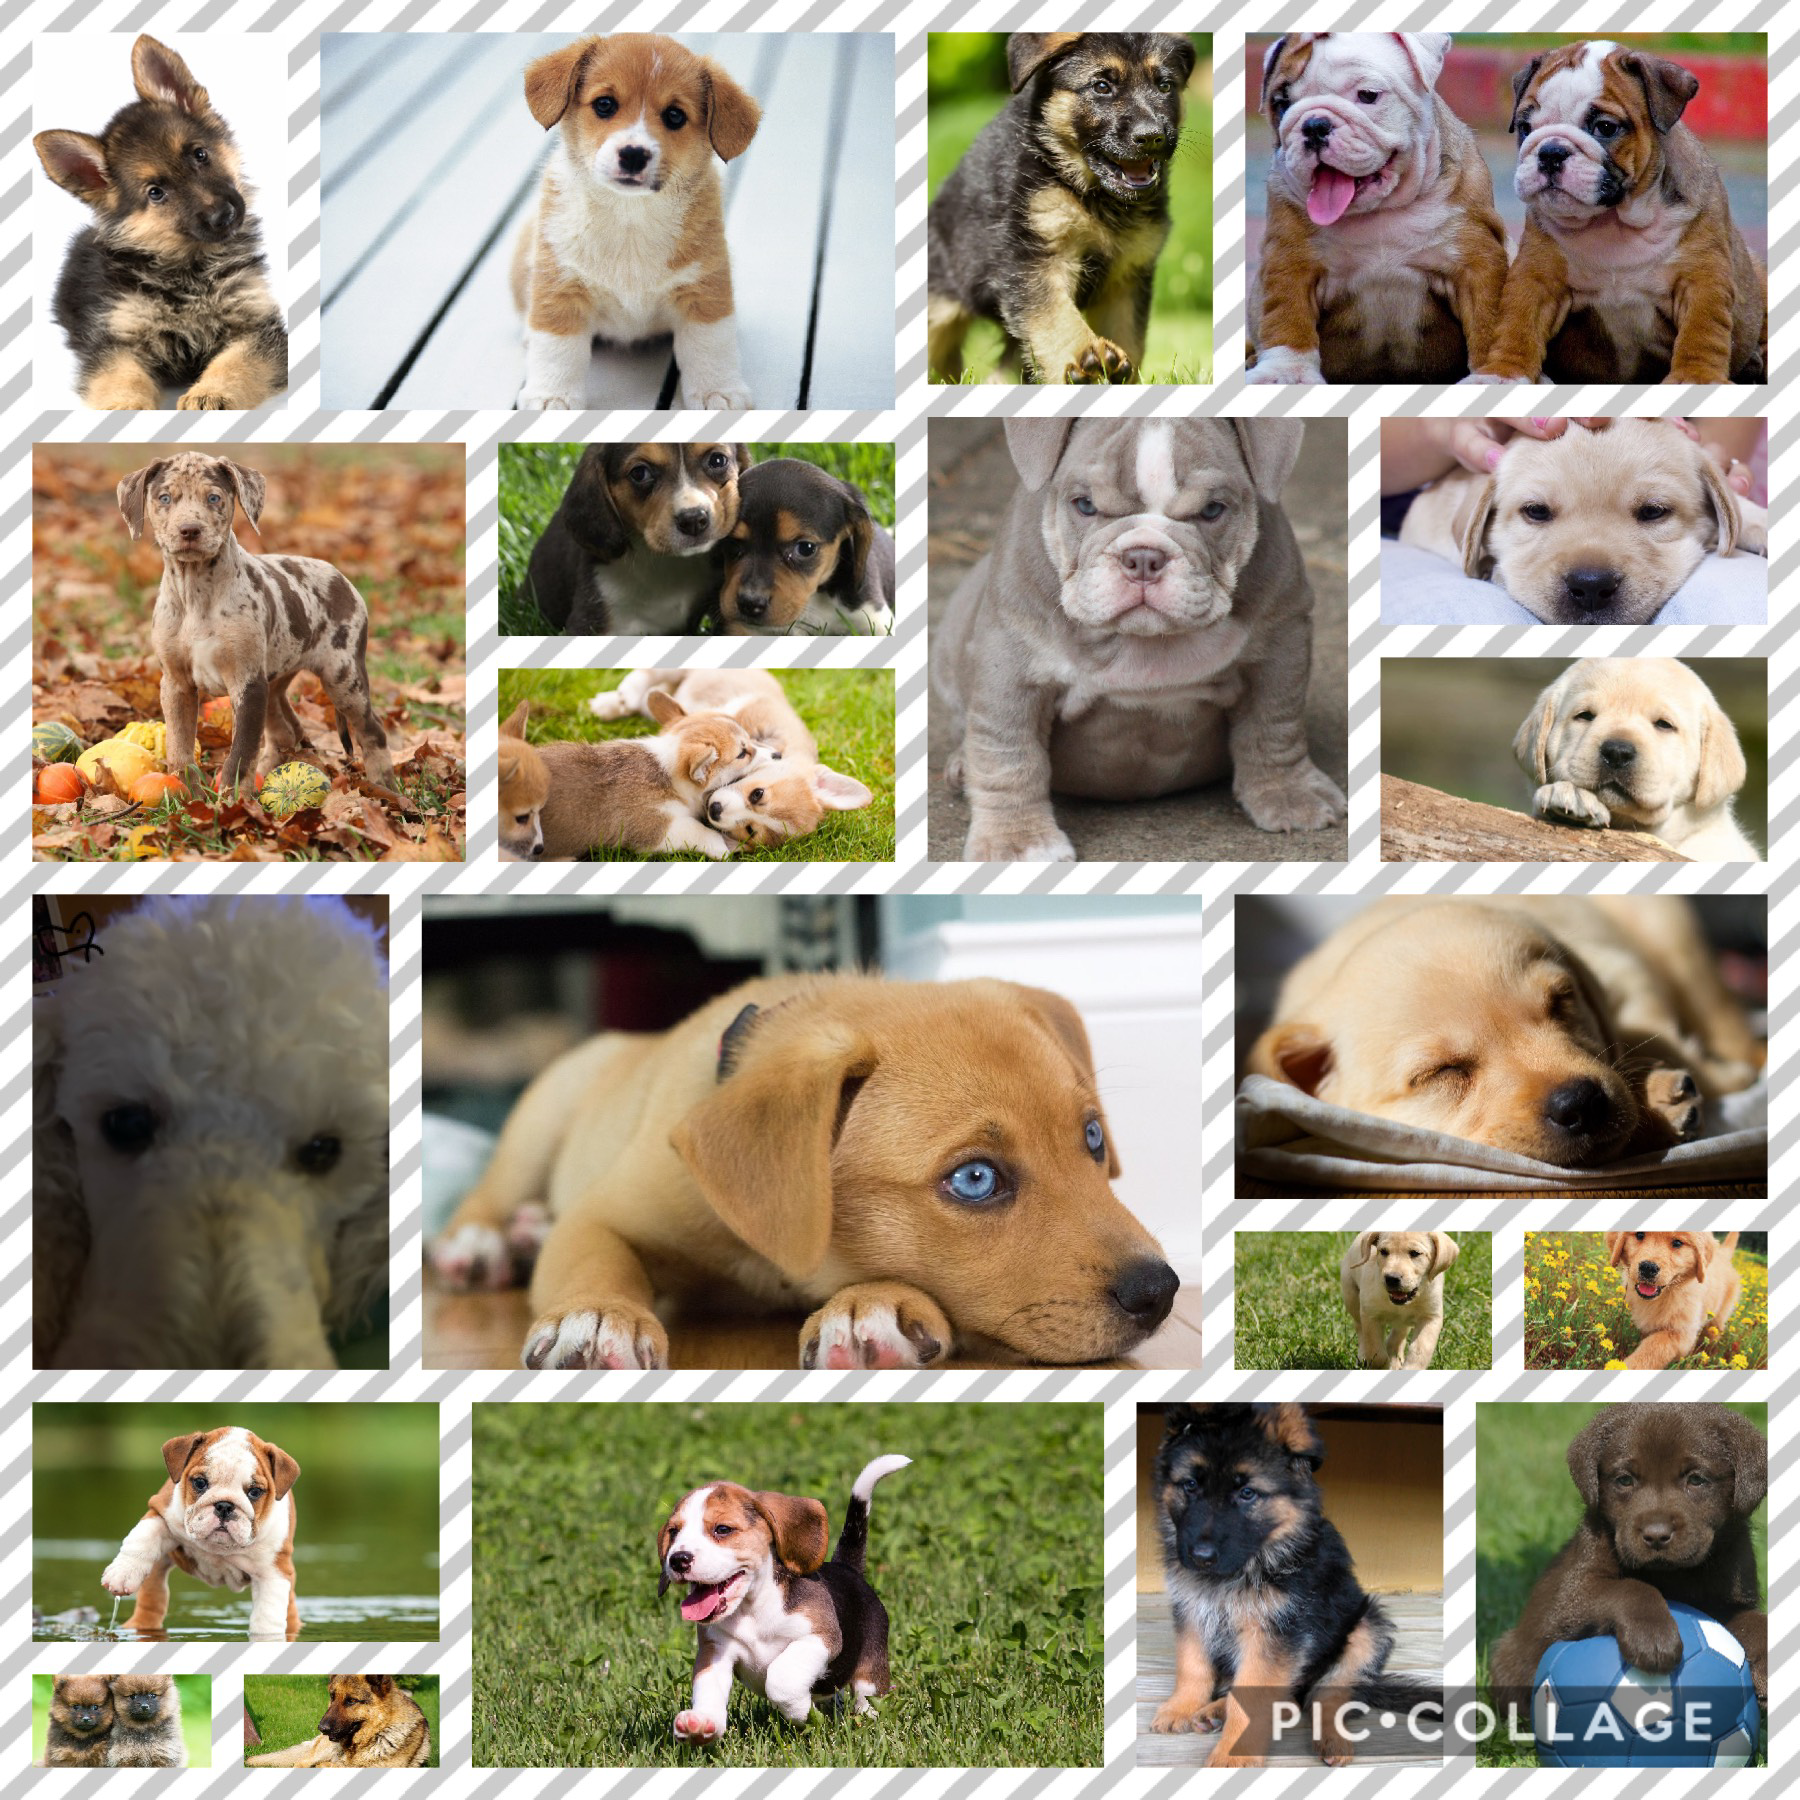 I love puppy's!! If u can find the picture of the puppy with the heart by it I will like some of your pictures. (Probably about 5 or 8 of them.)